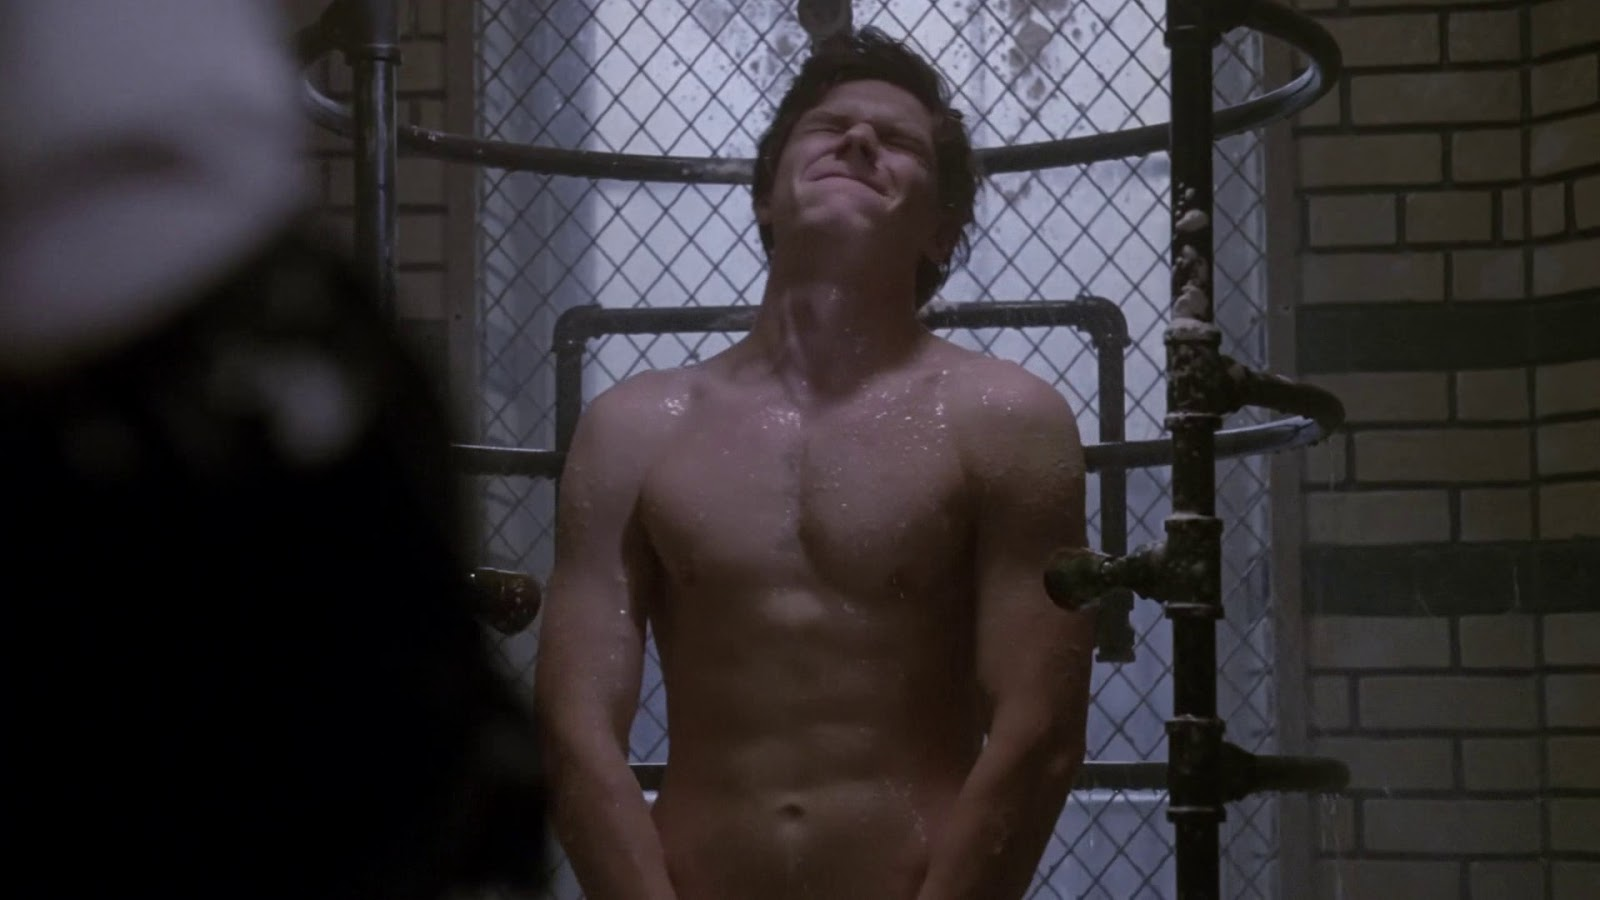 The Stars Come Out To Play: Evan Peters - Shirtless